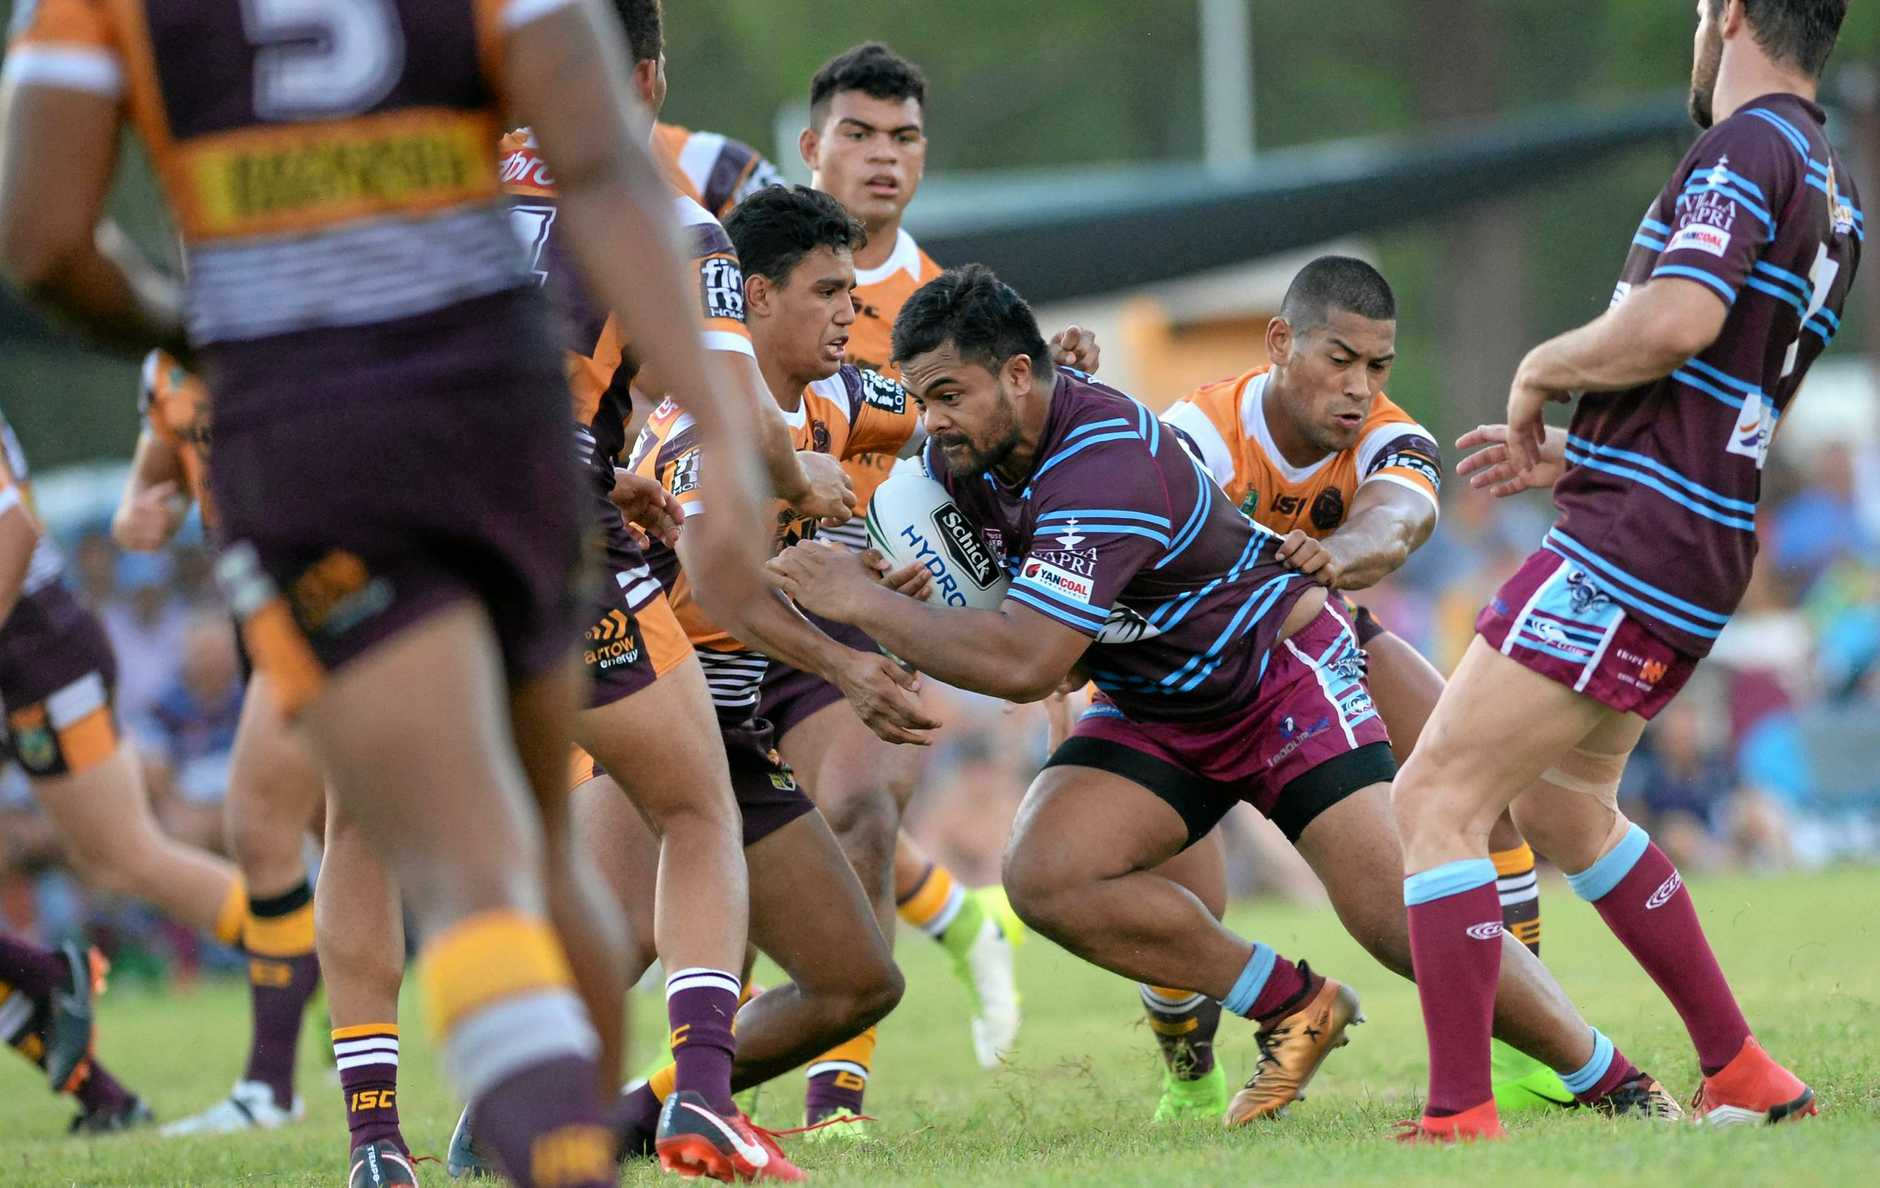 The CQ Capras went down 16-6 to the Brisbane Broncos in the trial game at Theodore on Saturday night.